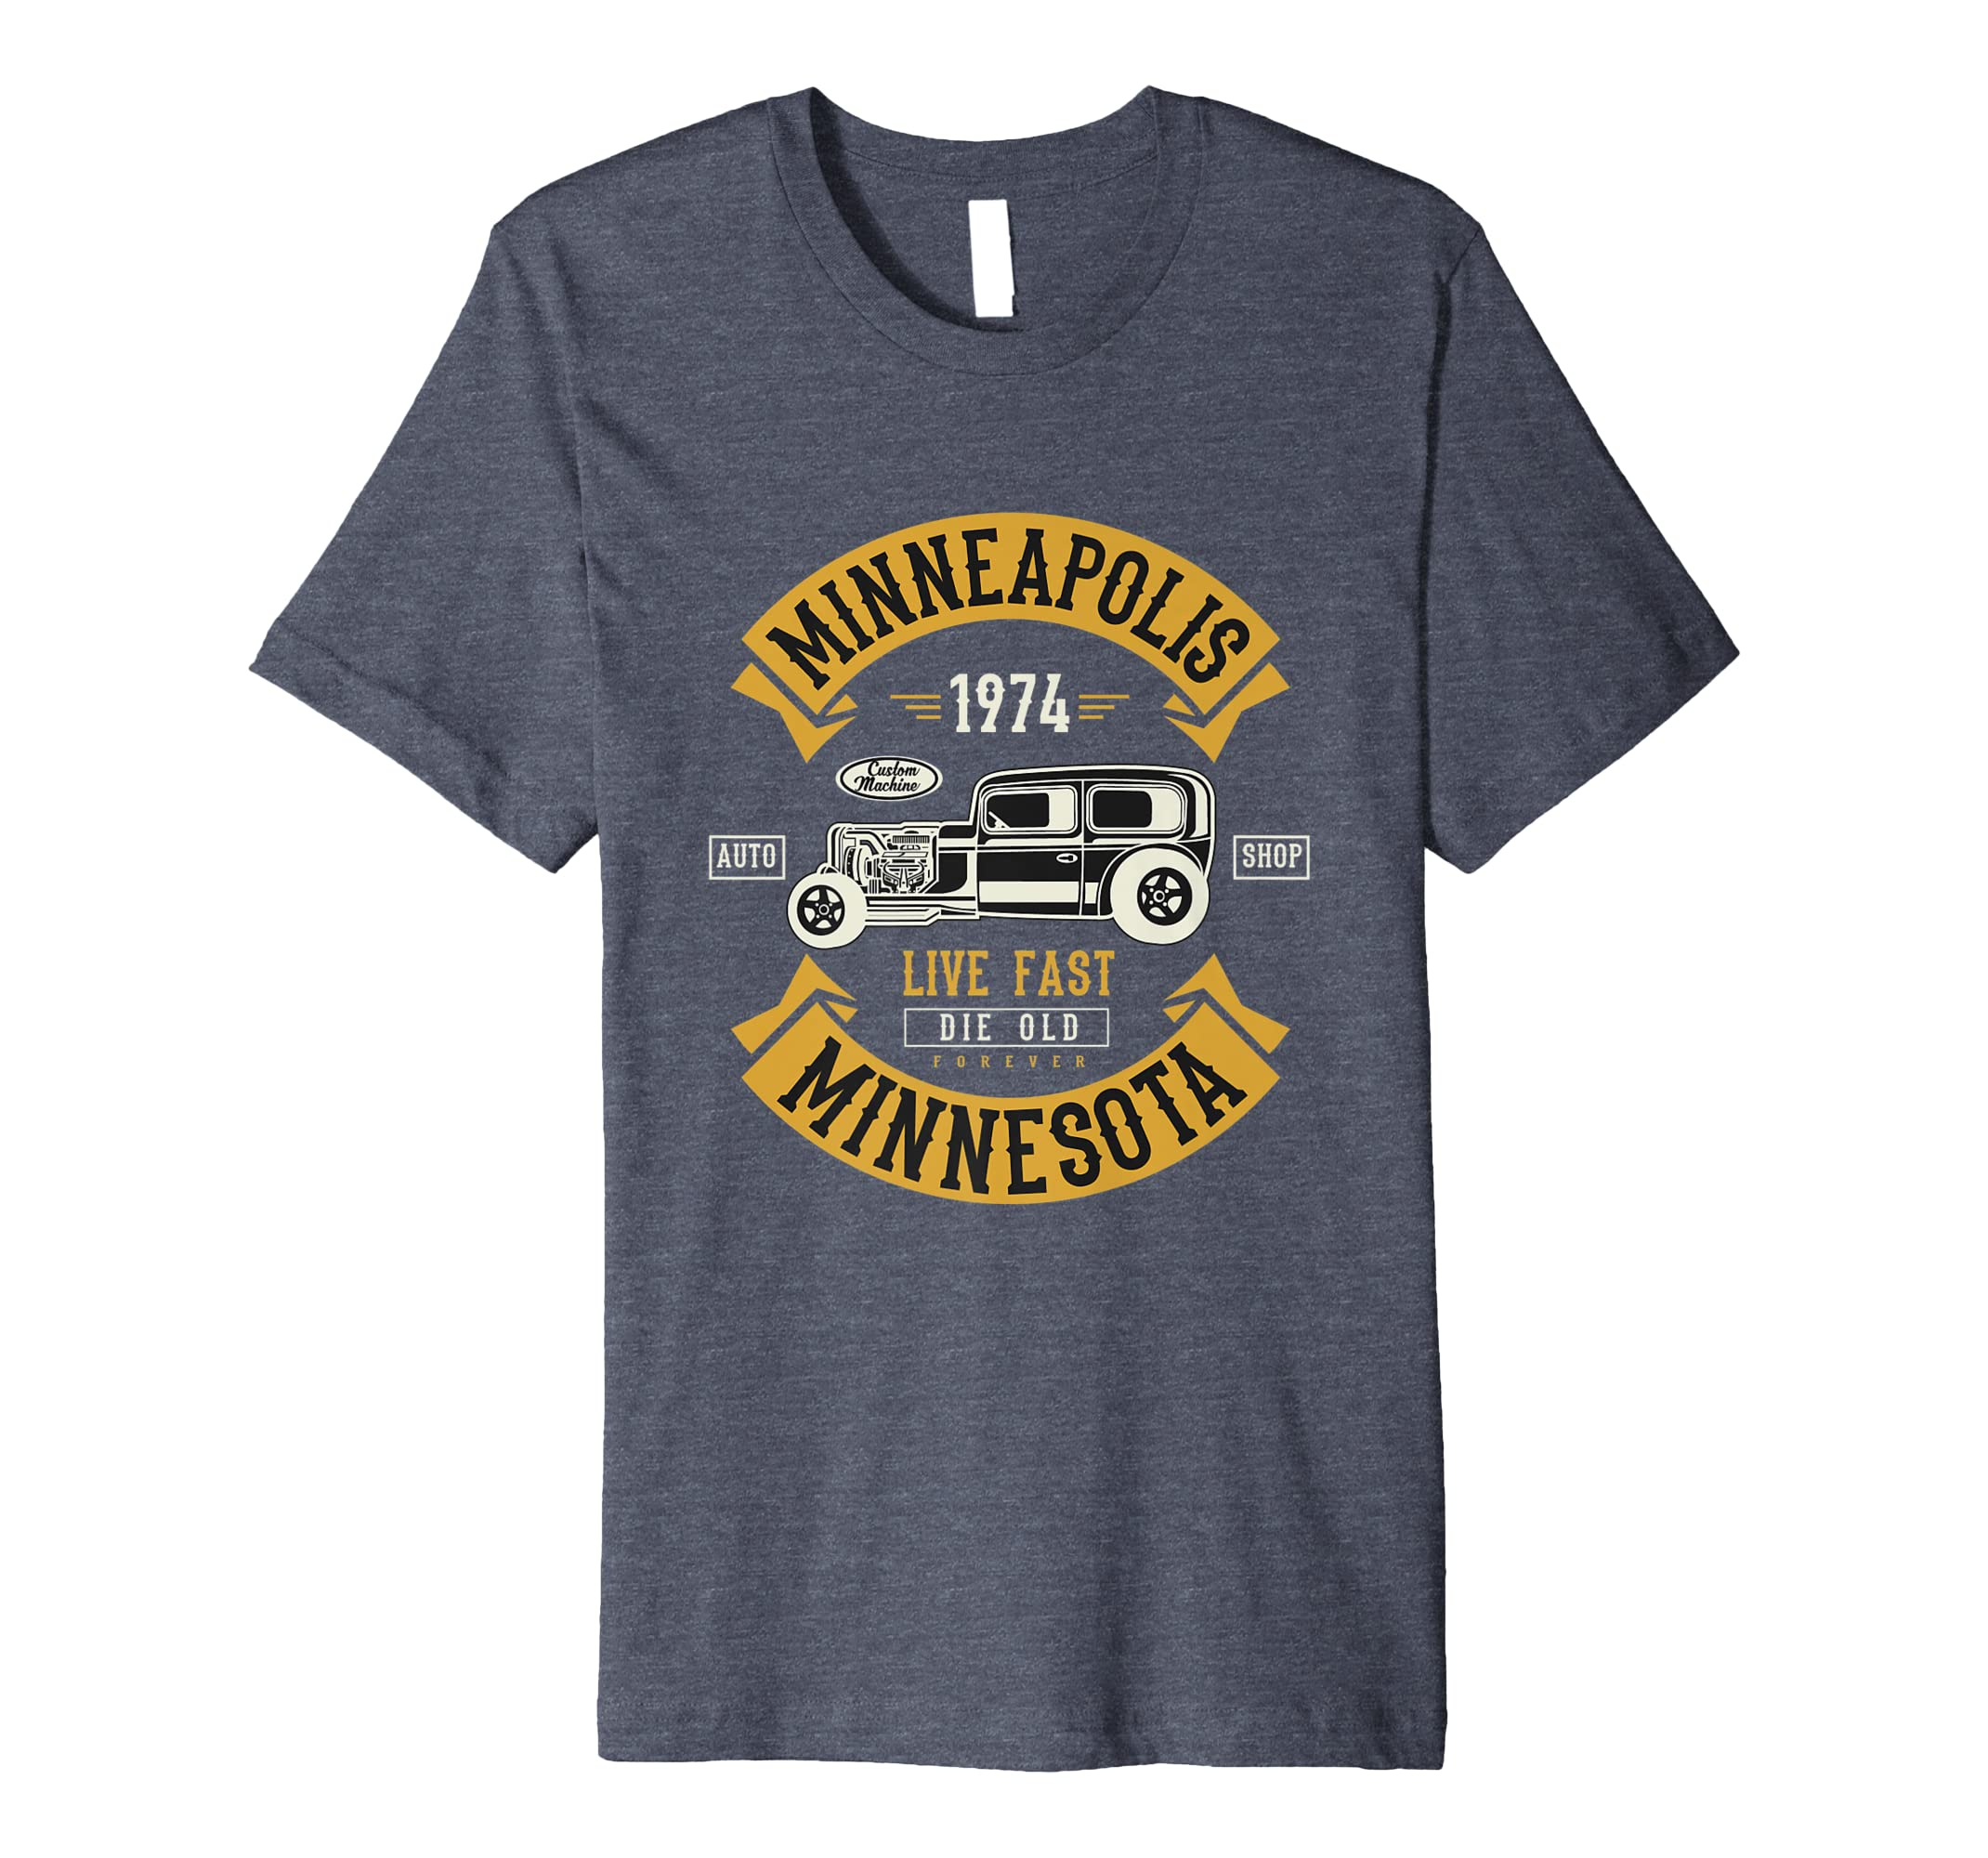 Vintage Hot Rod Minneapolis MN Muscle Car Väter Tag Shirt: Amazon.de ...